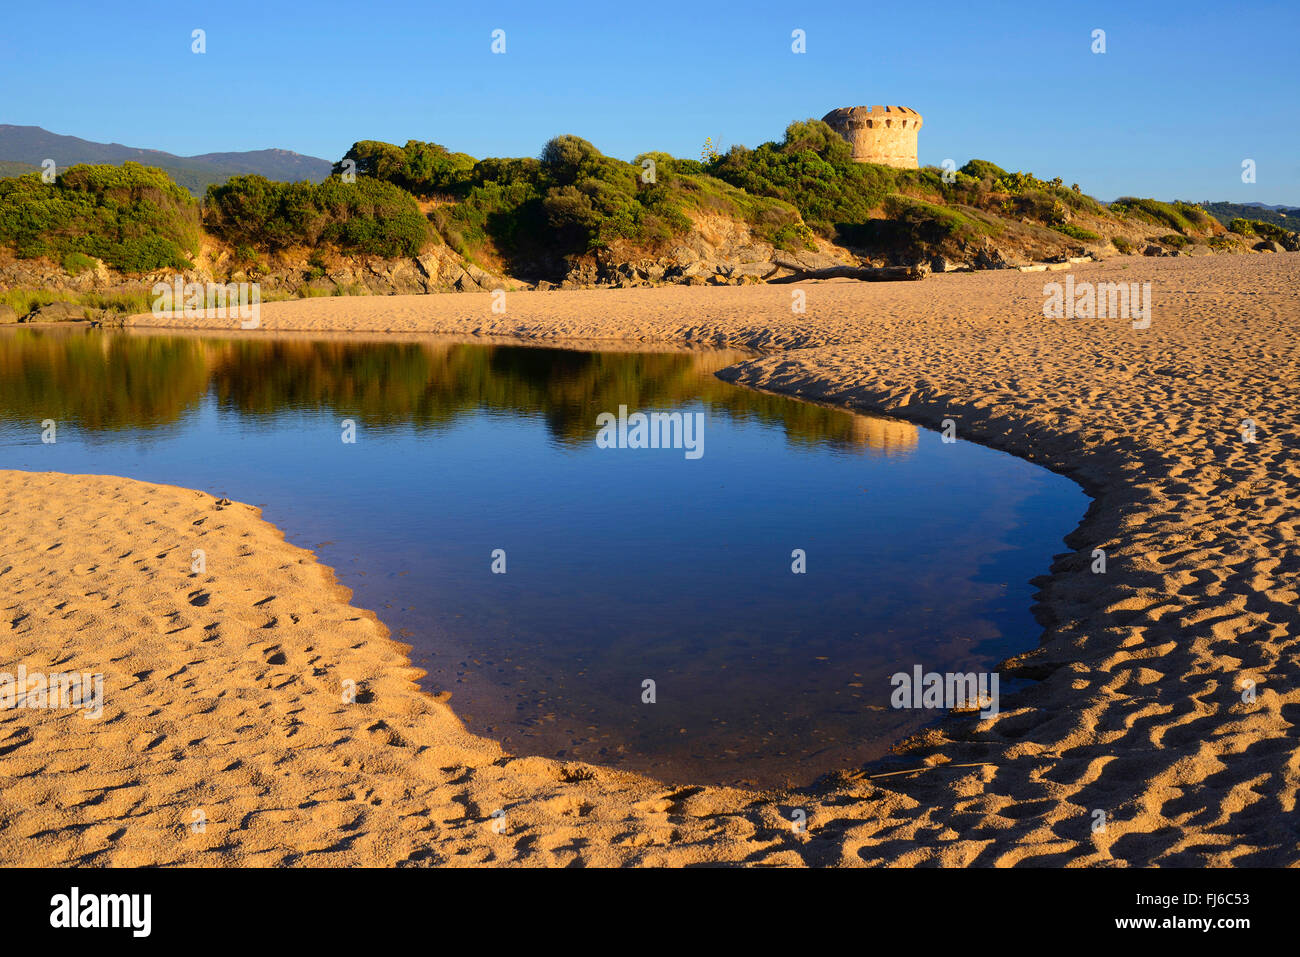 genuese tower and pond Lac de Capitello near Ajaccio town, south of Corisca island, France, Corsica, Ajaccio - Stock Image